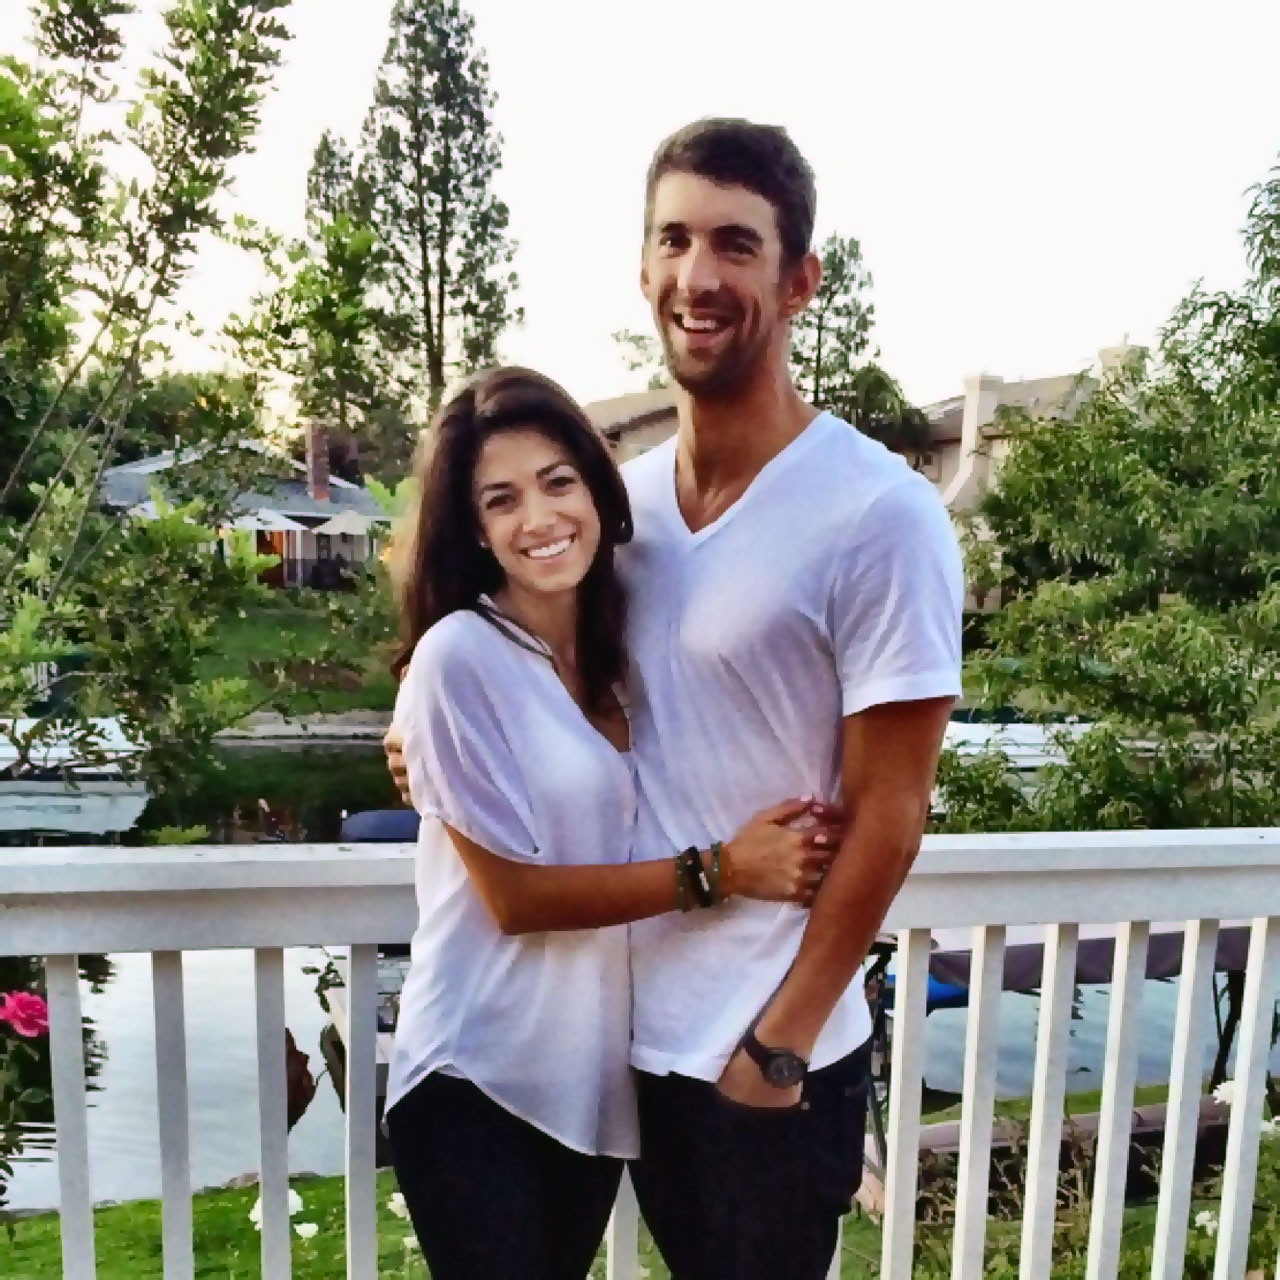 Miss California Nicole Johnson engaged to Michael Phelps